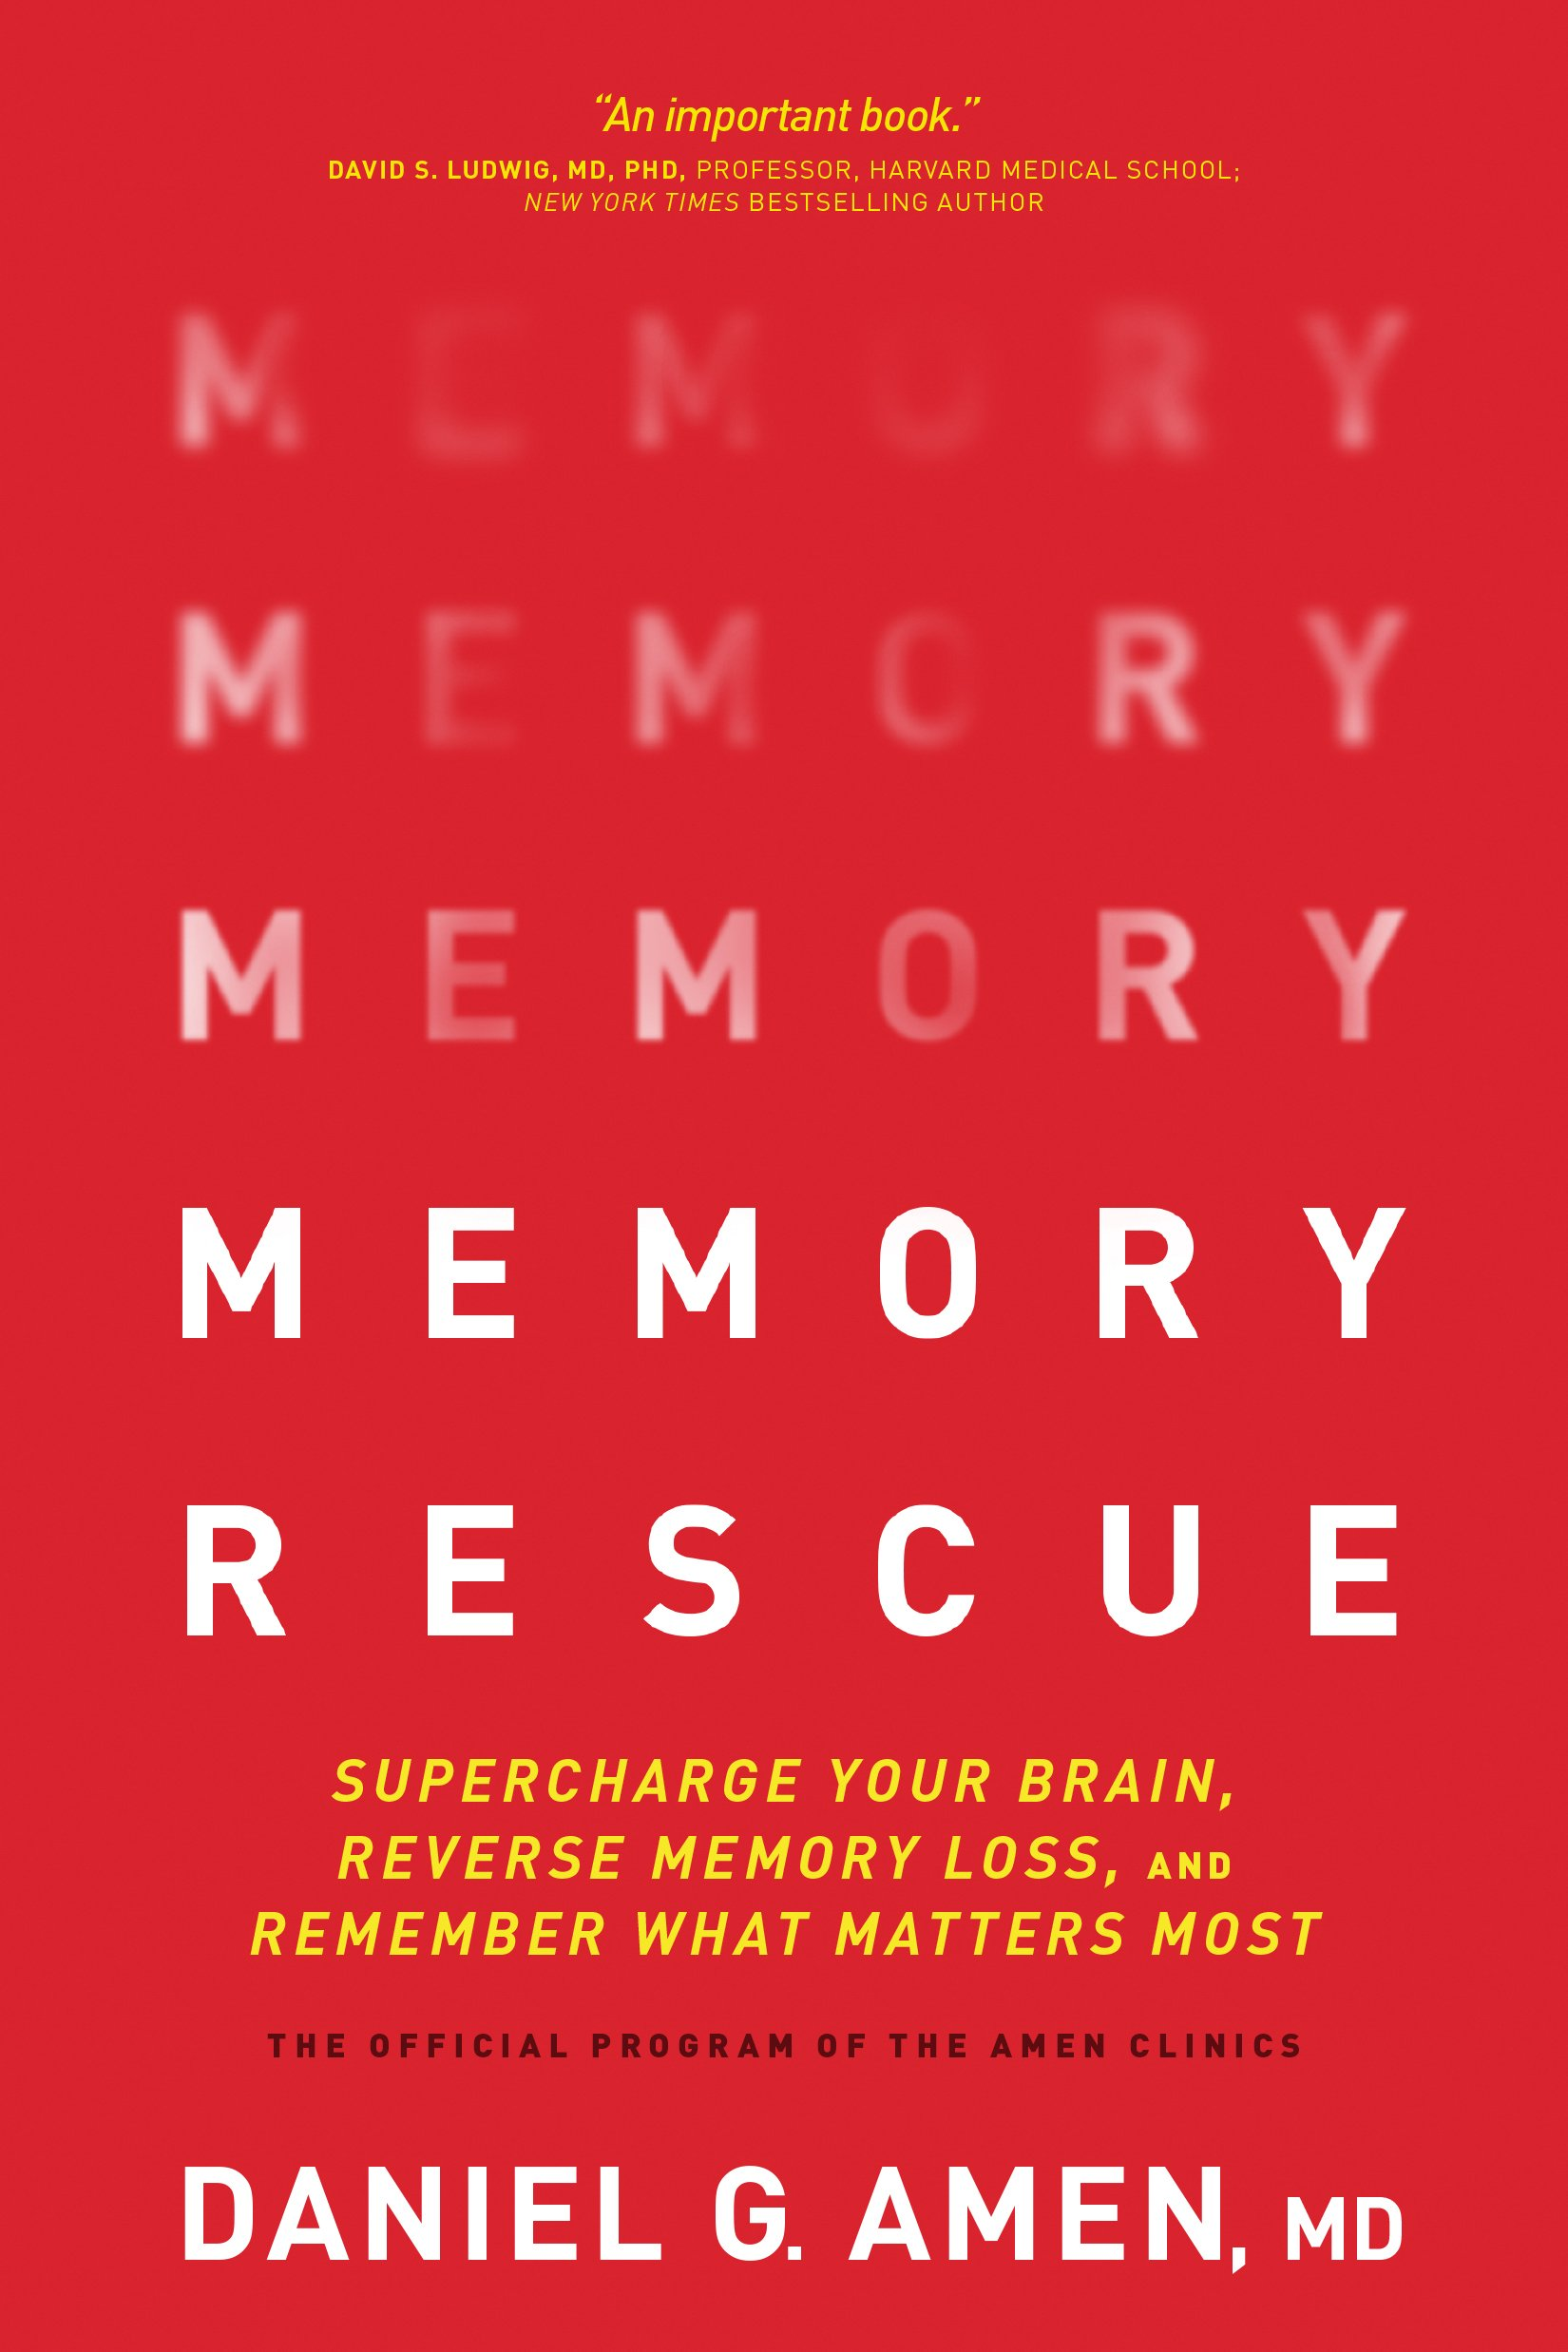 Memory Rescue Supercharge Reverse Remember